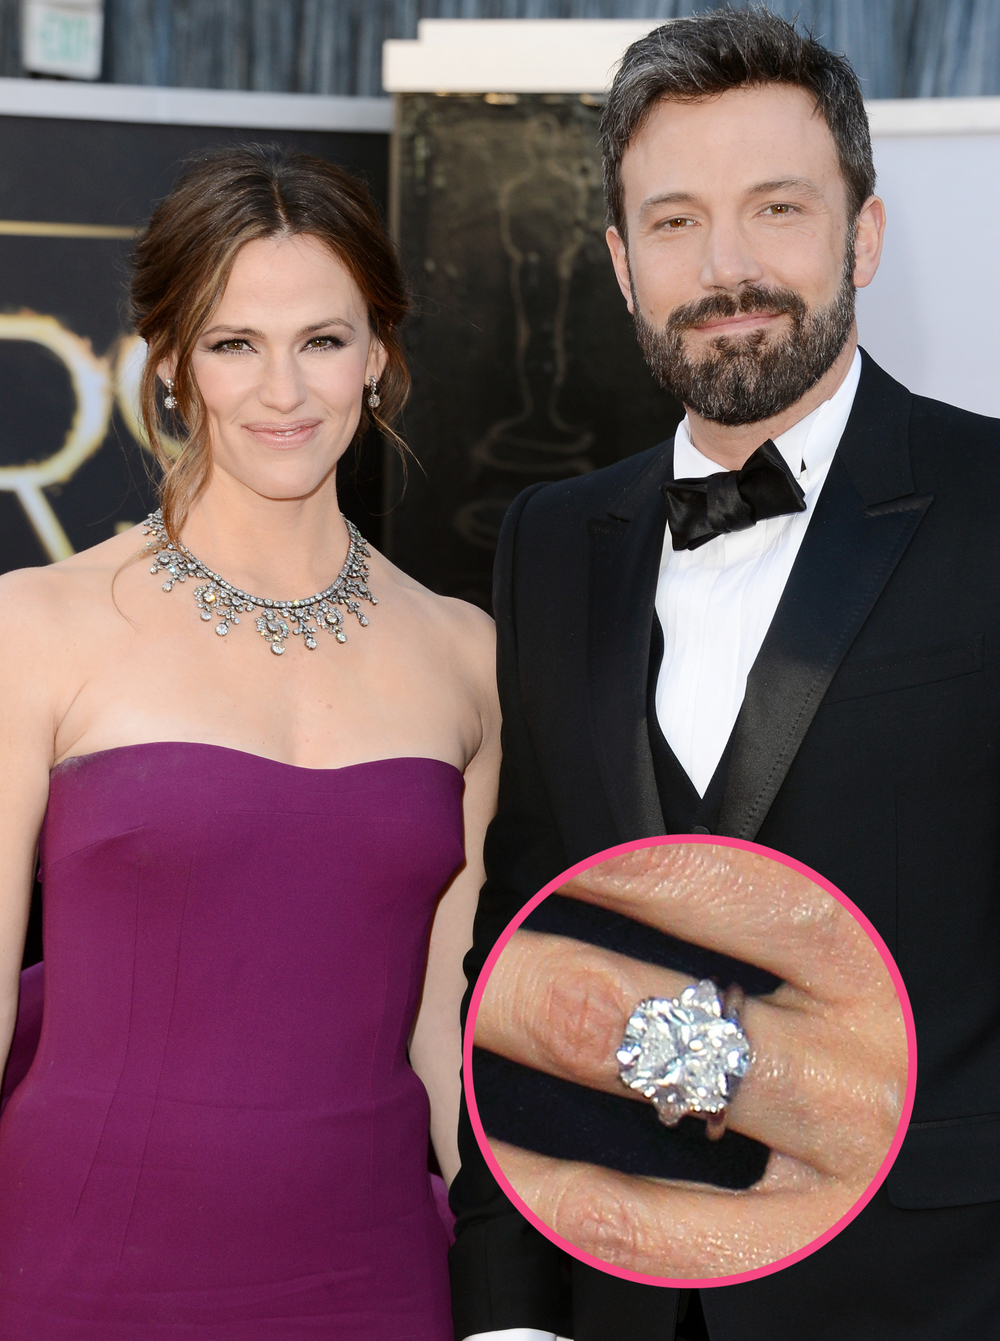 jennifer-garner-engagement-ring.jpg